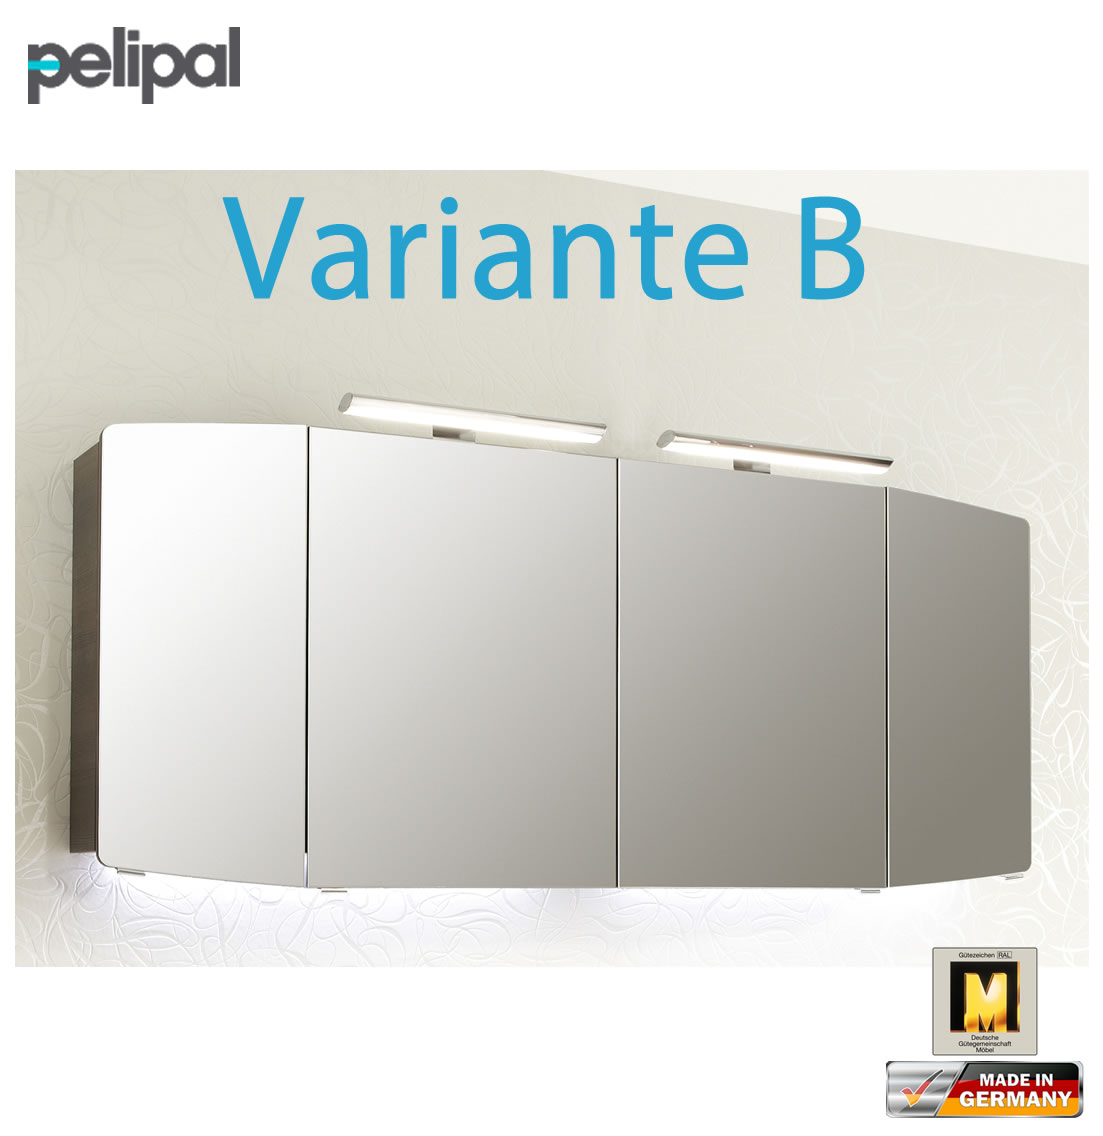 pelipal cassca spiegelschrank 160 cm cs sps 22 variante b impuls home. Black Bedroom Furniture Sets. Home Design Ideas